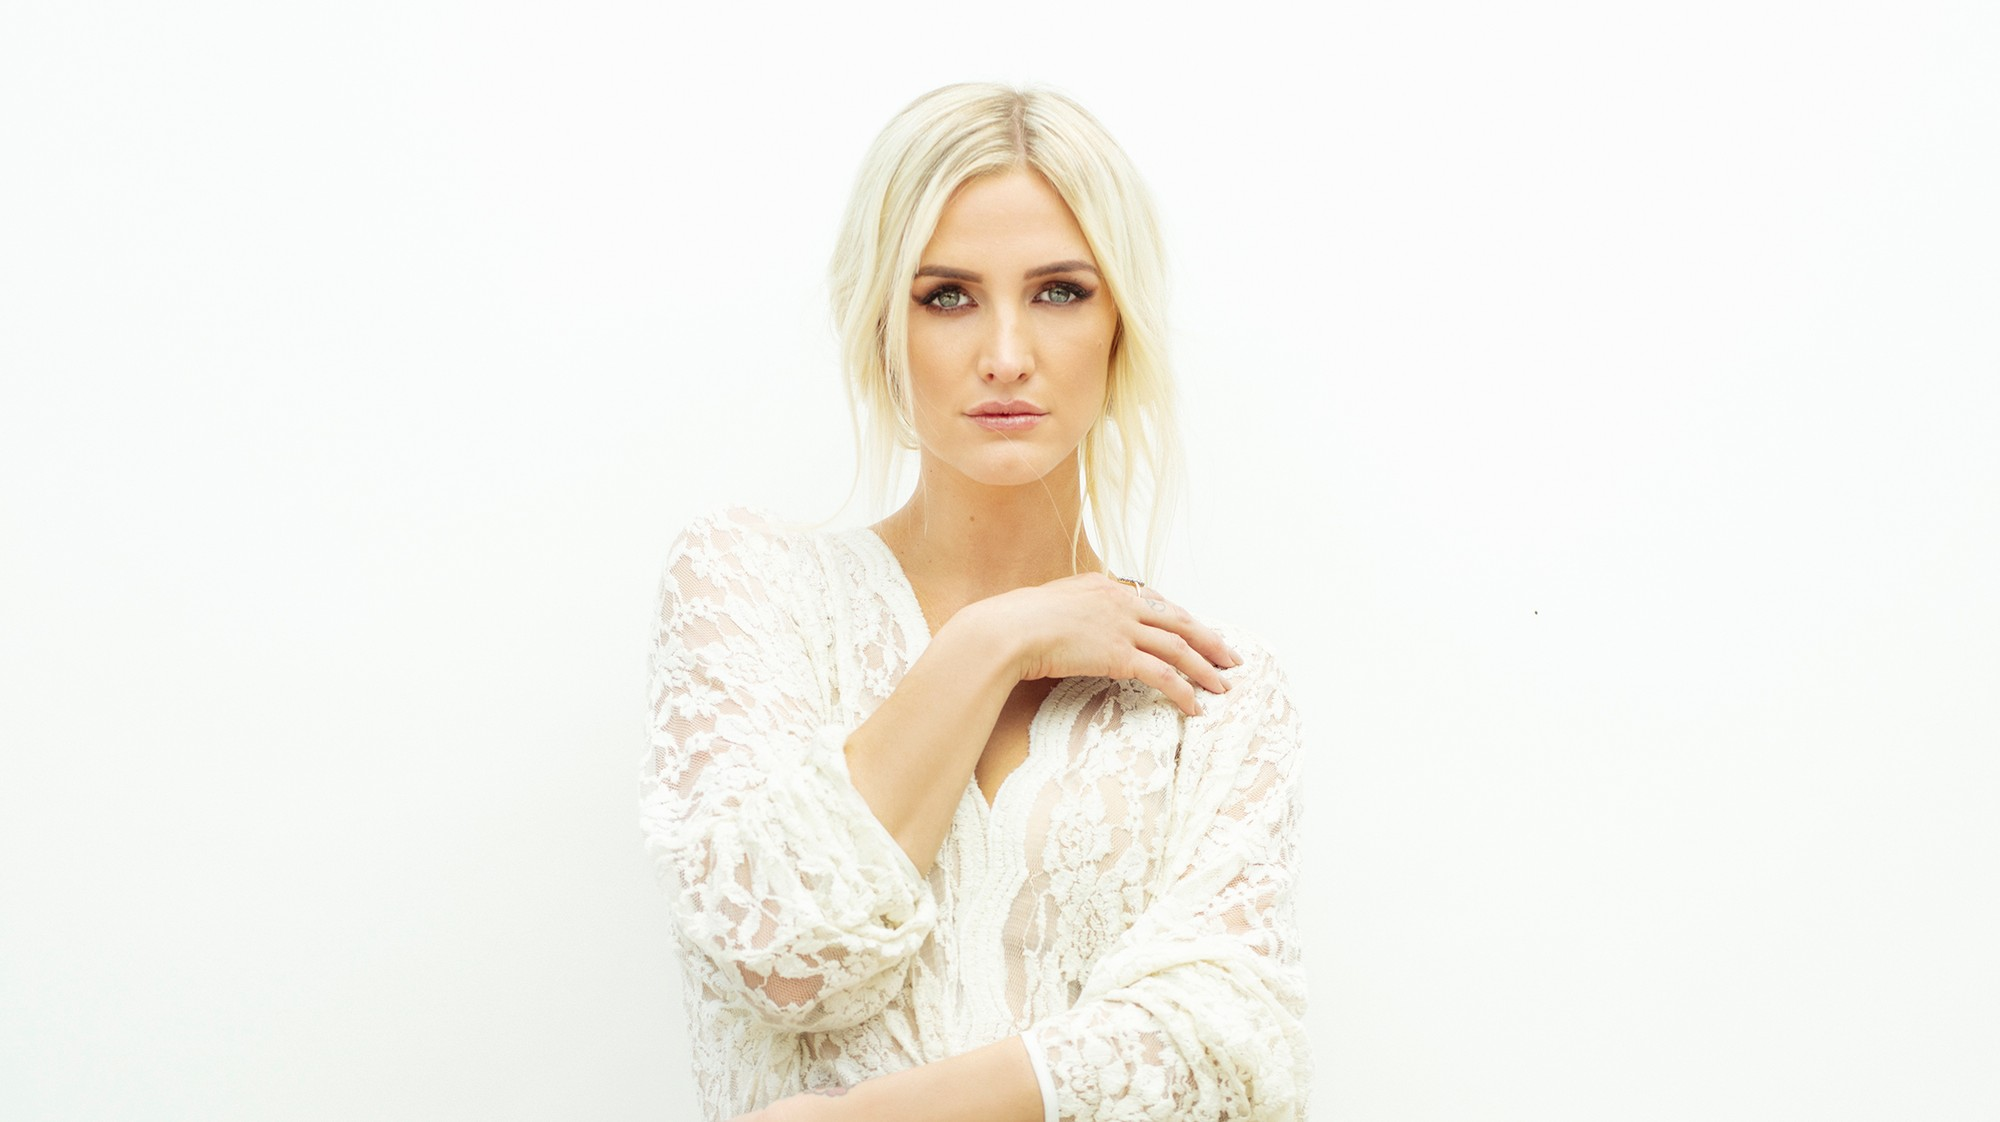 Ashlee Simpson knows she's underrated, but she's okay with